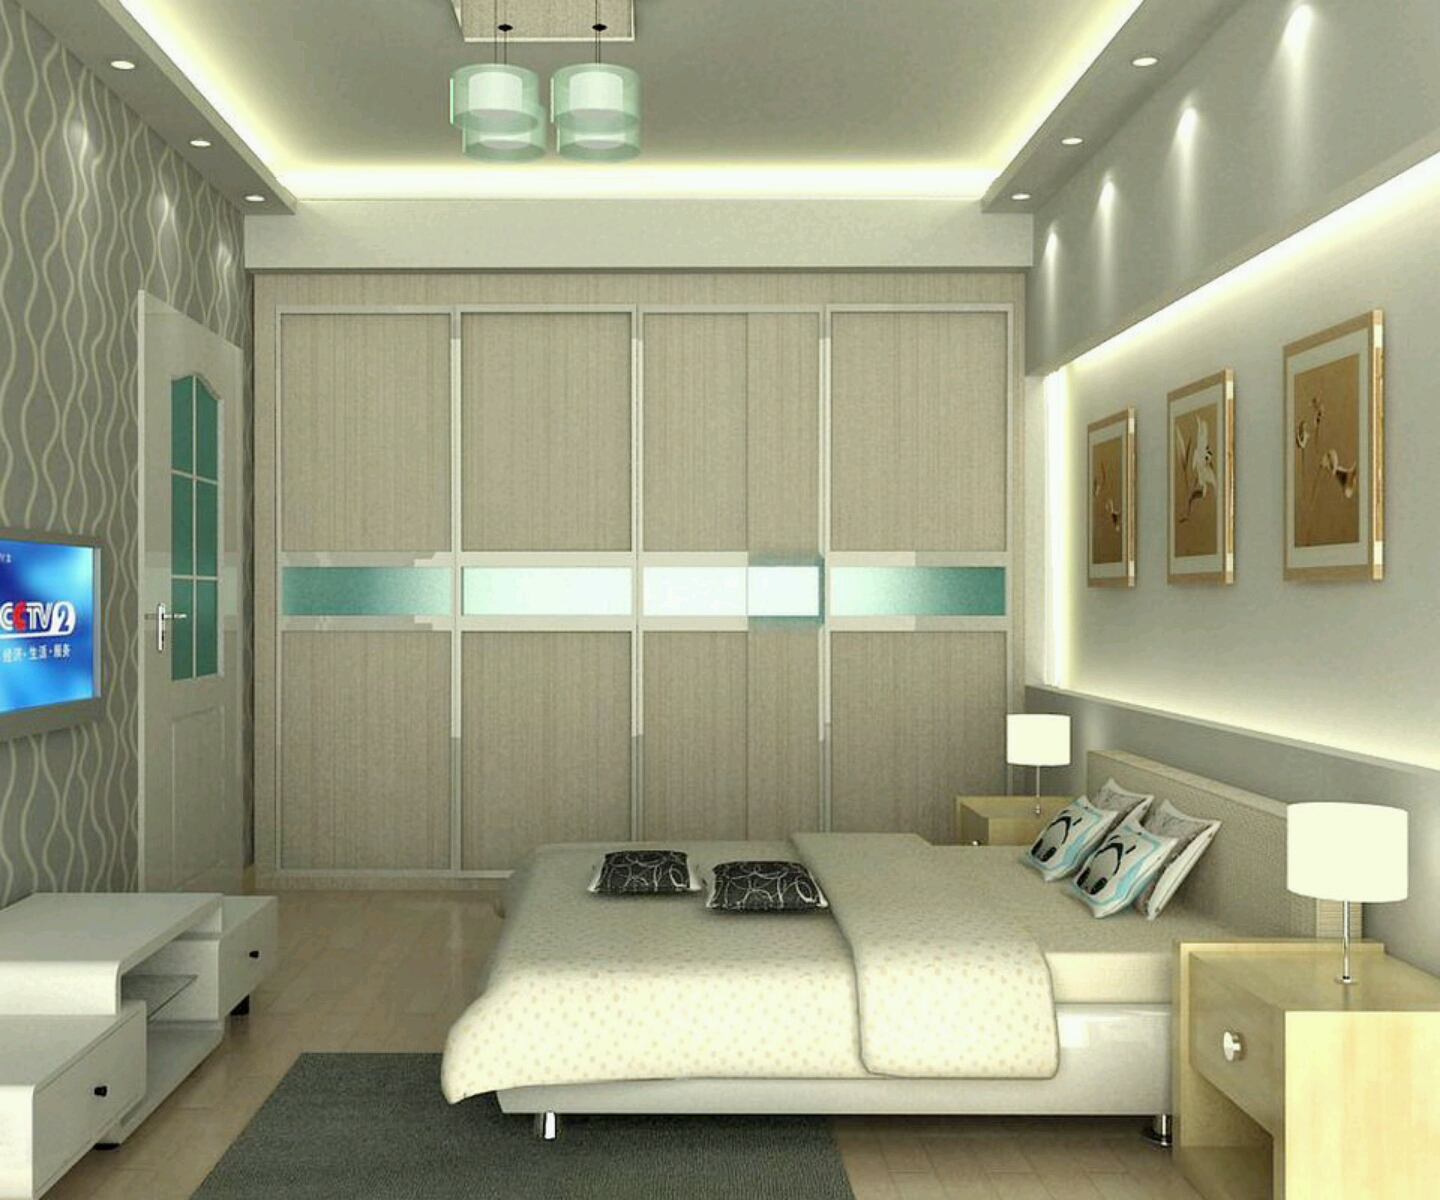 New home designs latest modern homes bedrooms designs for New bedroom design ideas